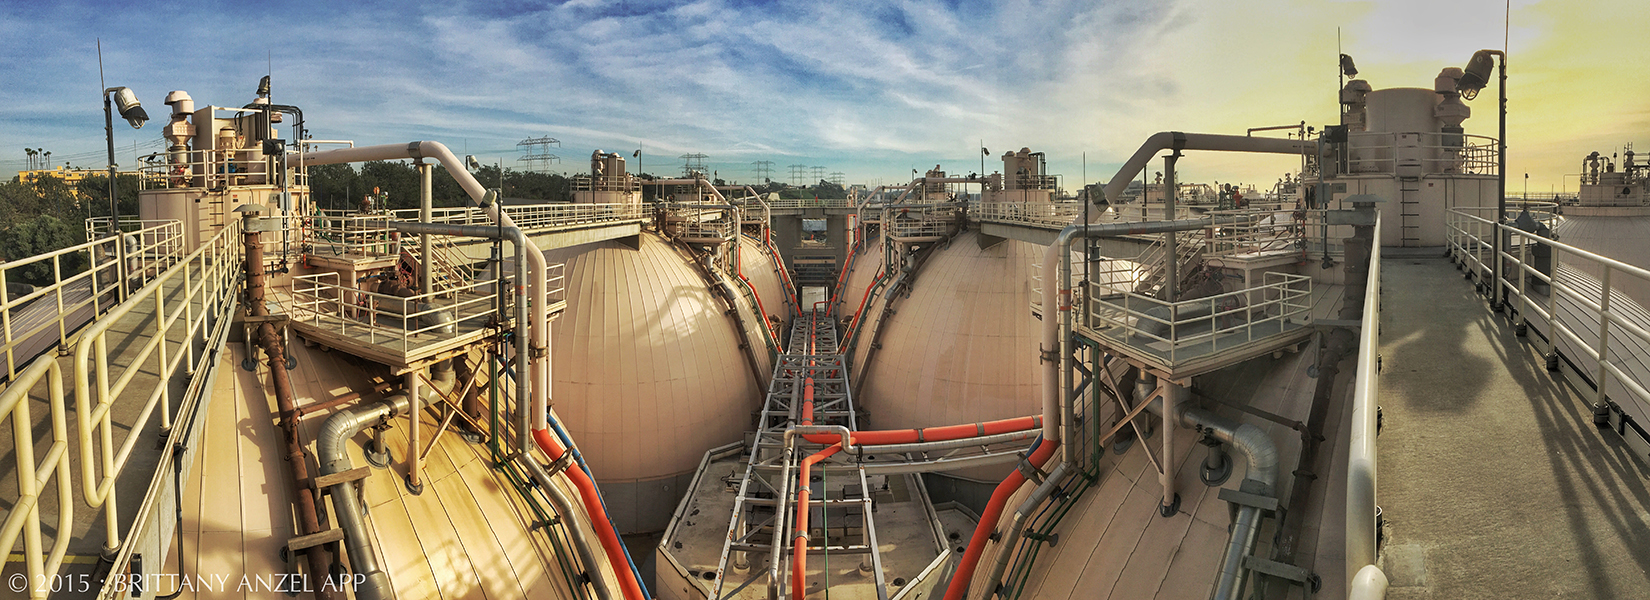 A view from atop the tanks at the Hyperion Wastewater Treatment Plant in Playa Del Rey, CA.  This plant is the largest (and the oldest) in the City of Los Angeles.